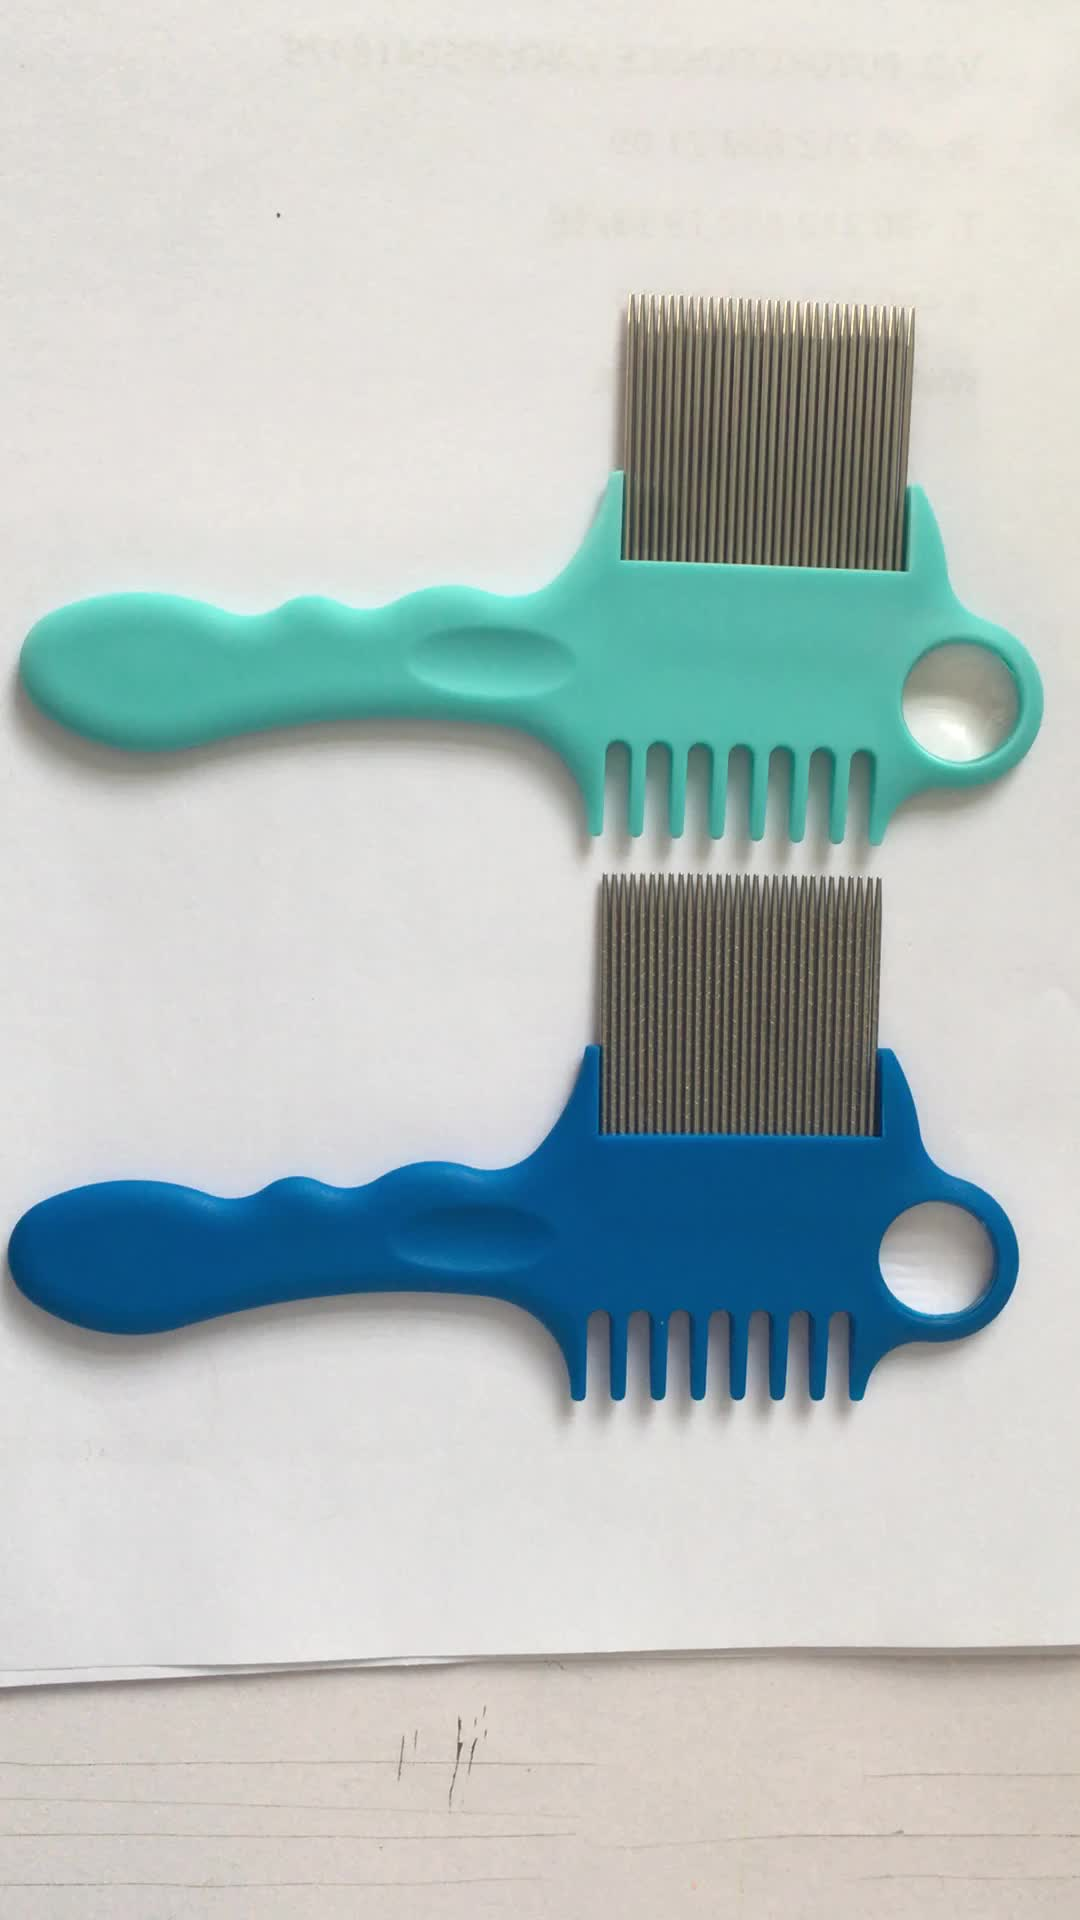 factory supplied long handle with A magnifying glass pet comb nit free head lice comb